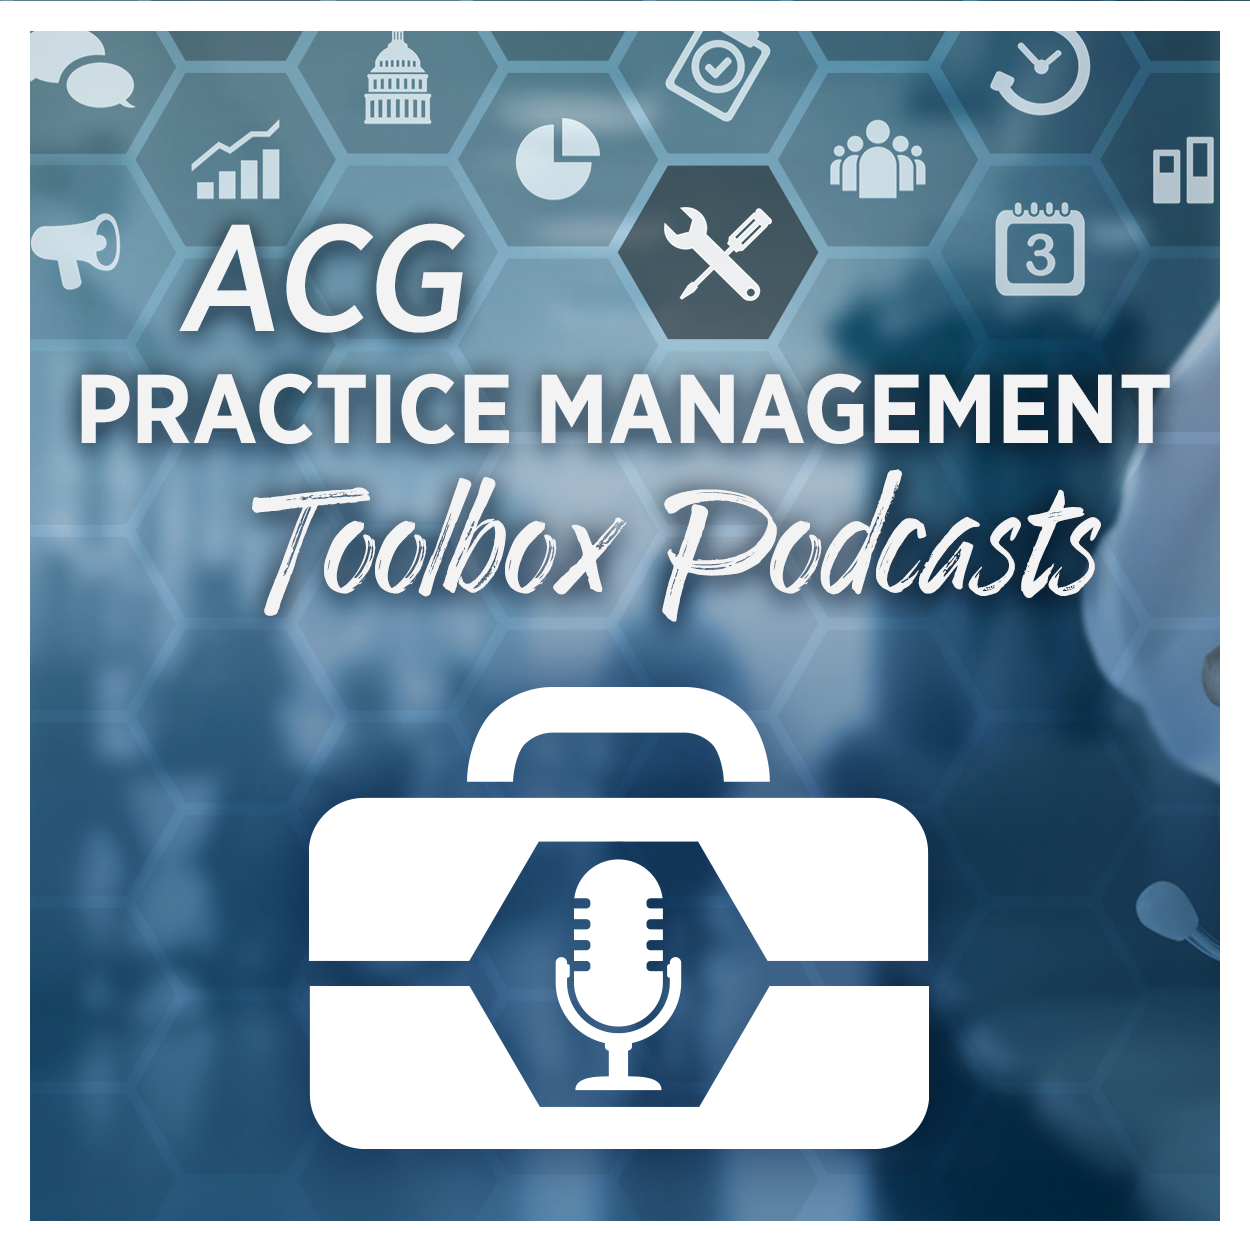 ACG Practice Management Toolbox Podcast